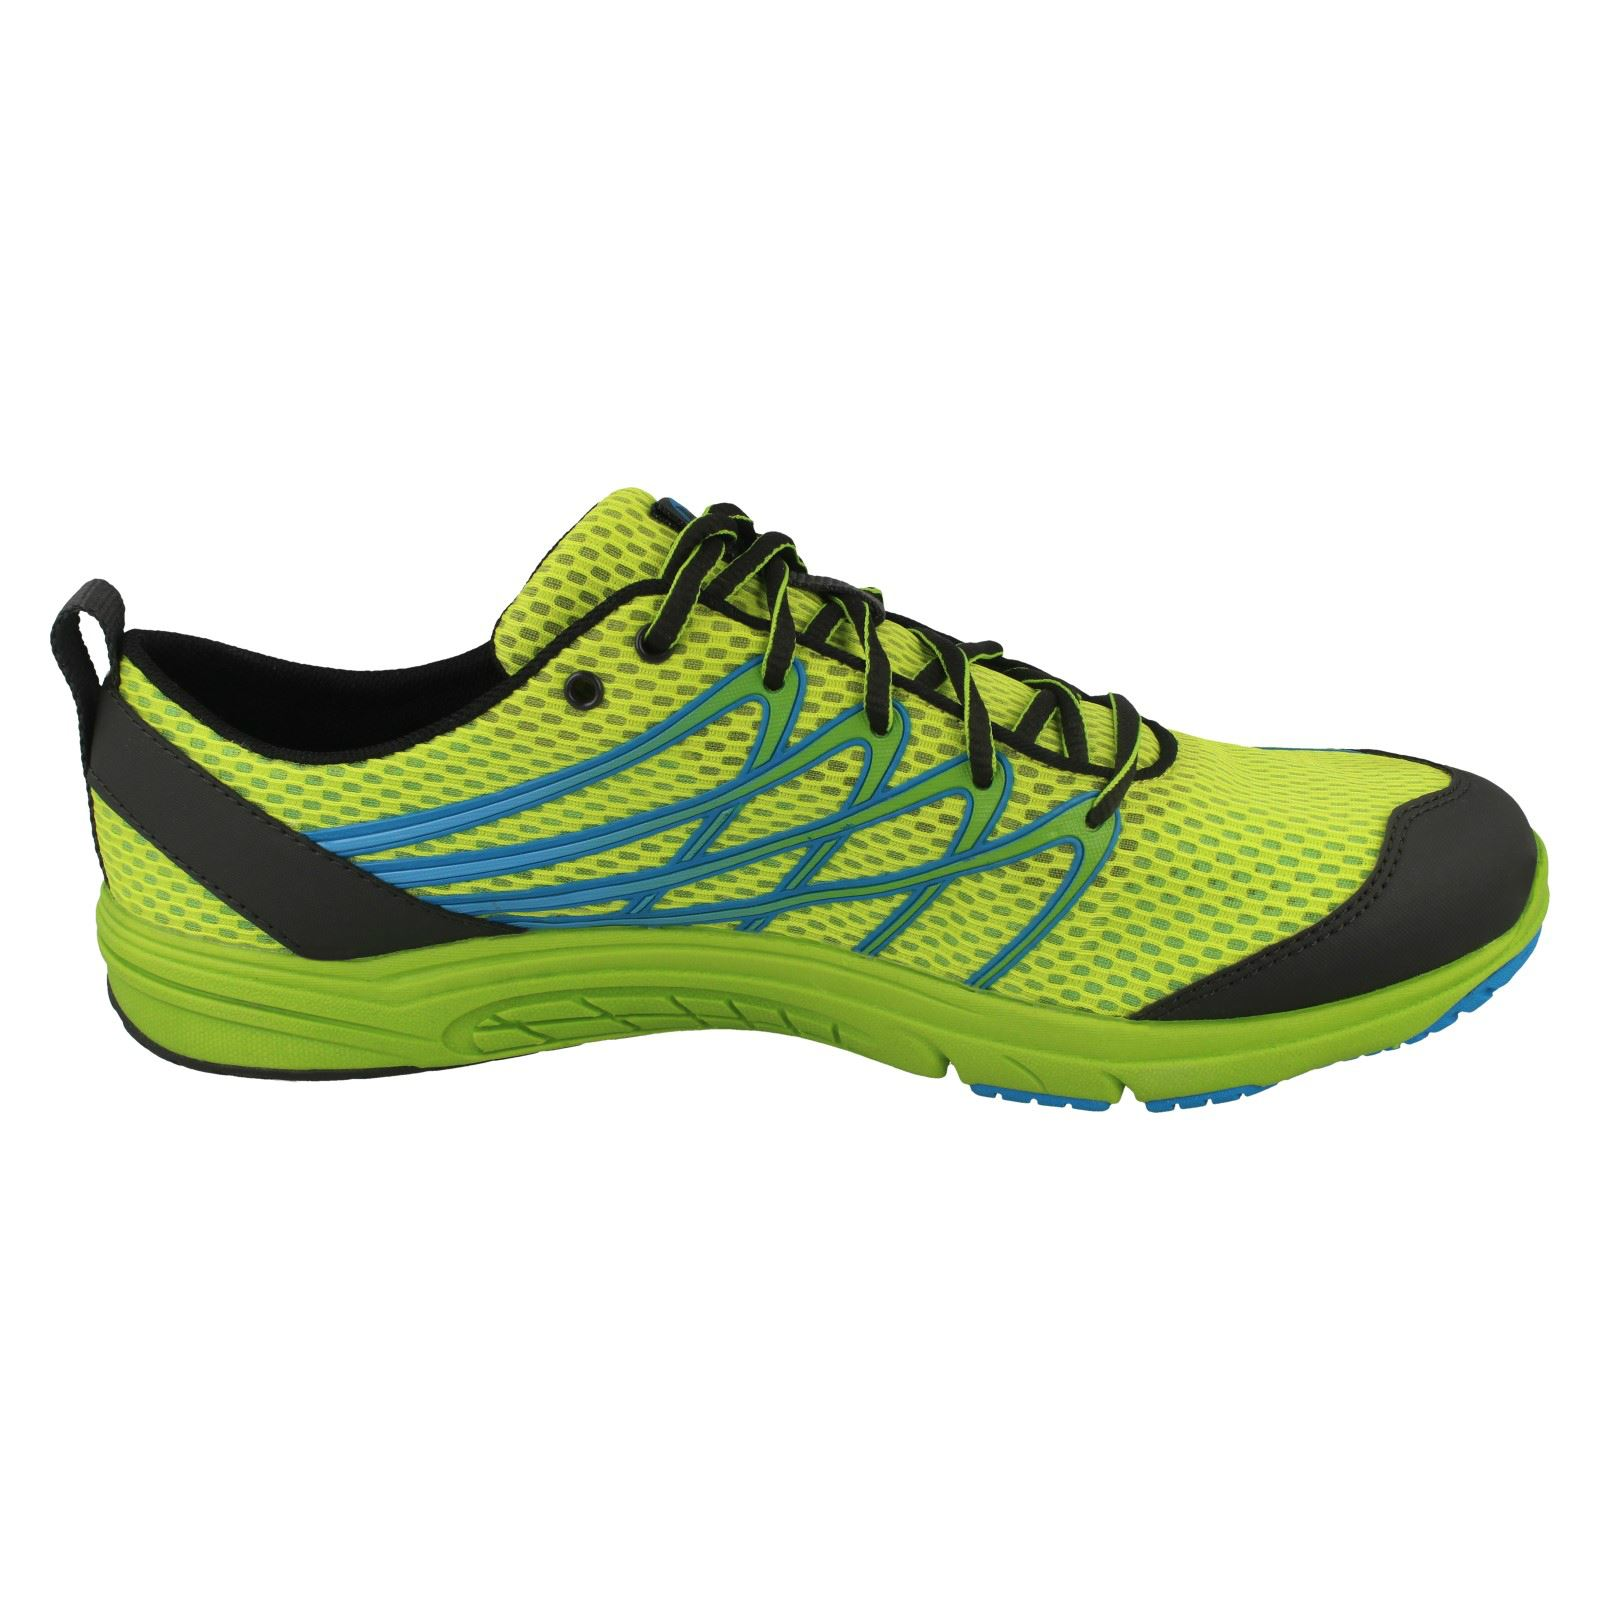 Mens Merrell Lace Up Trainers Bare Access 3